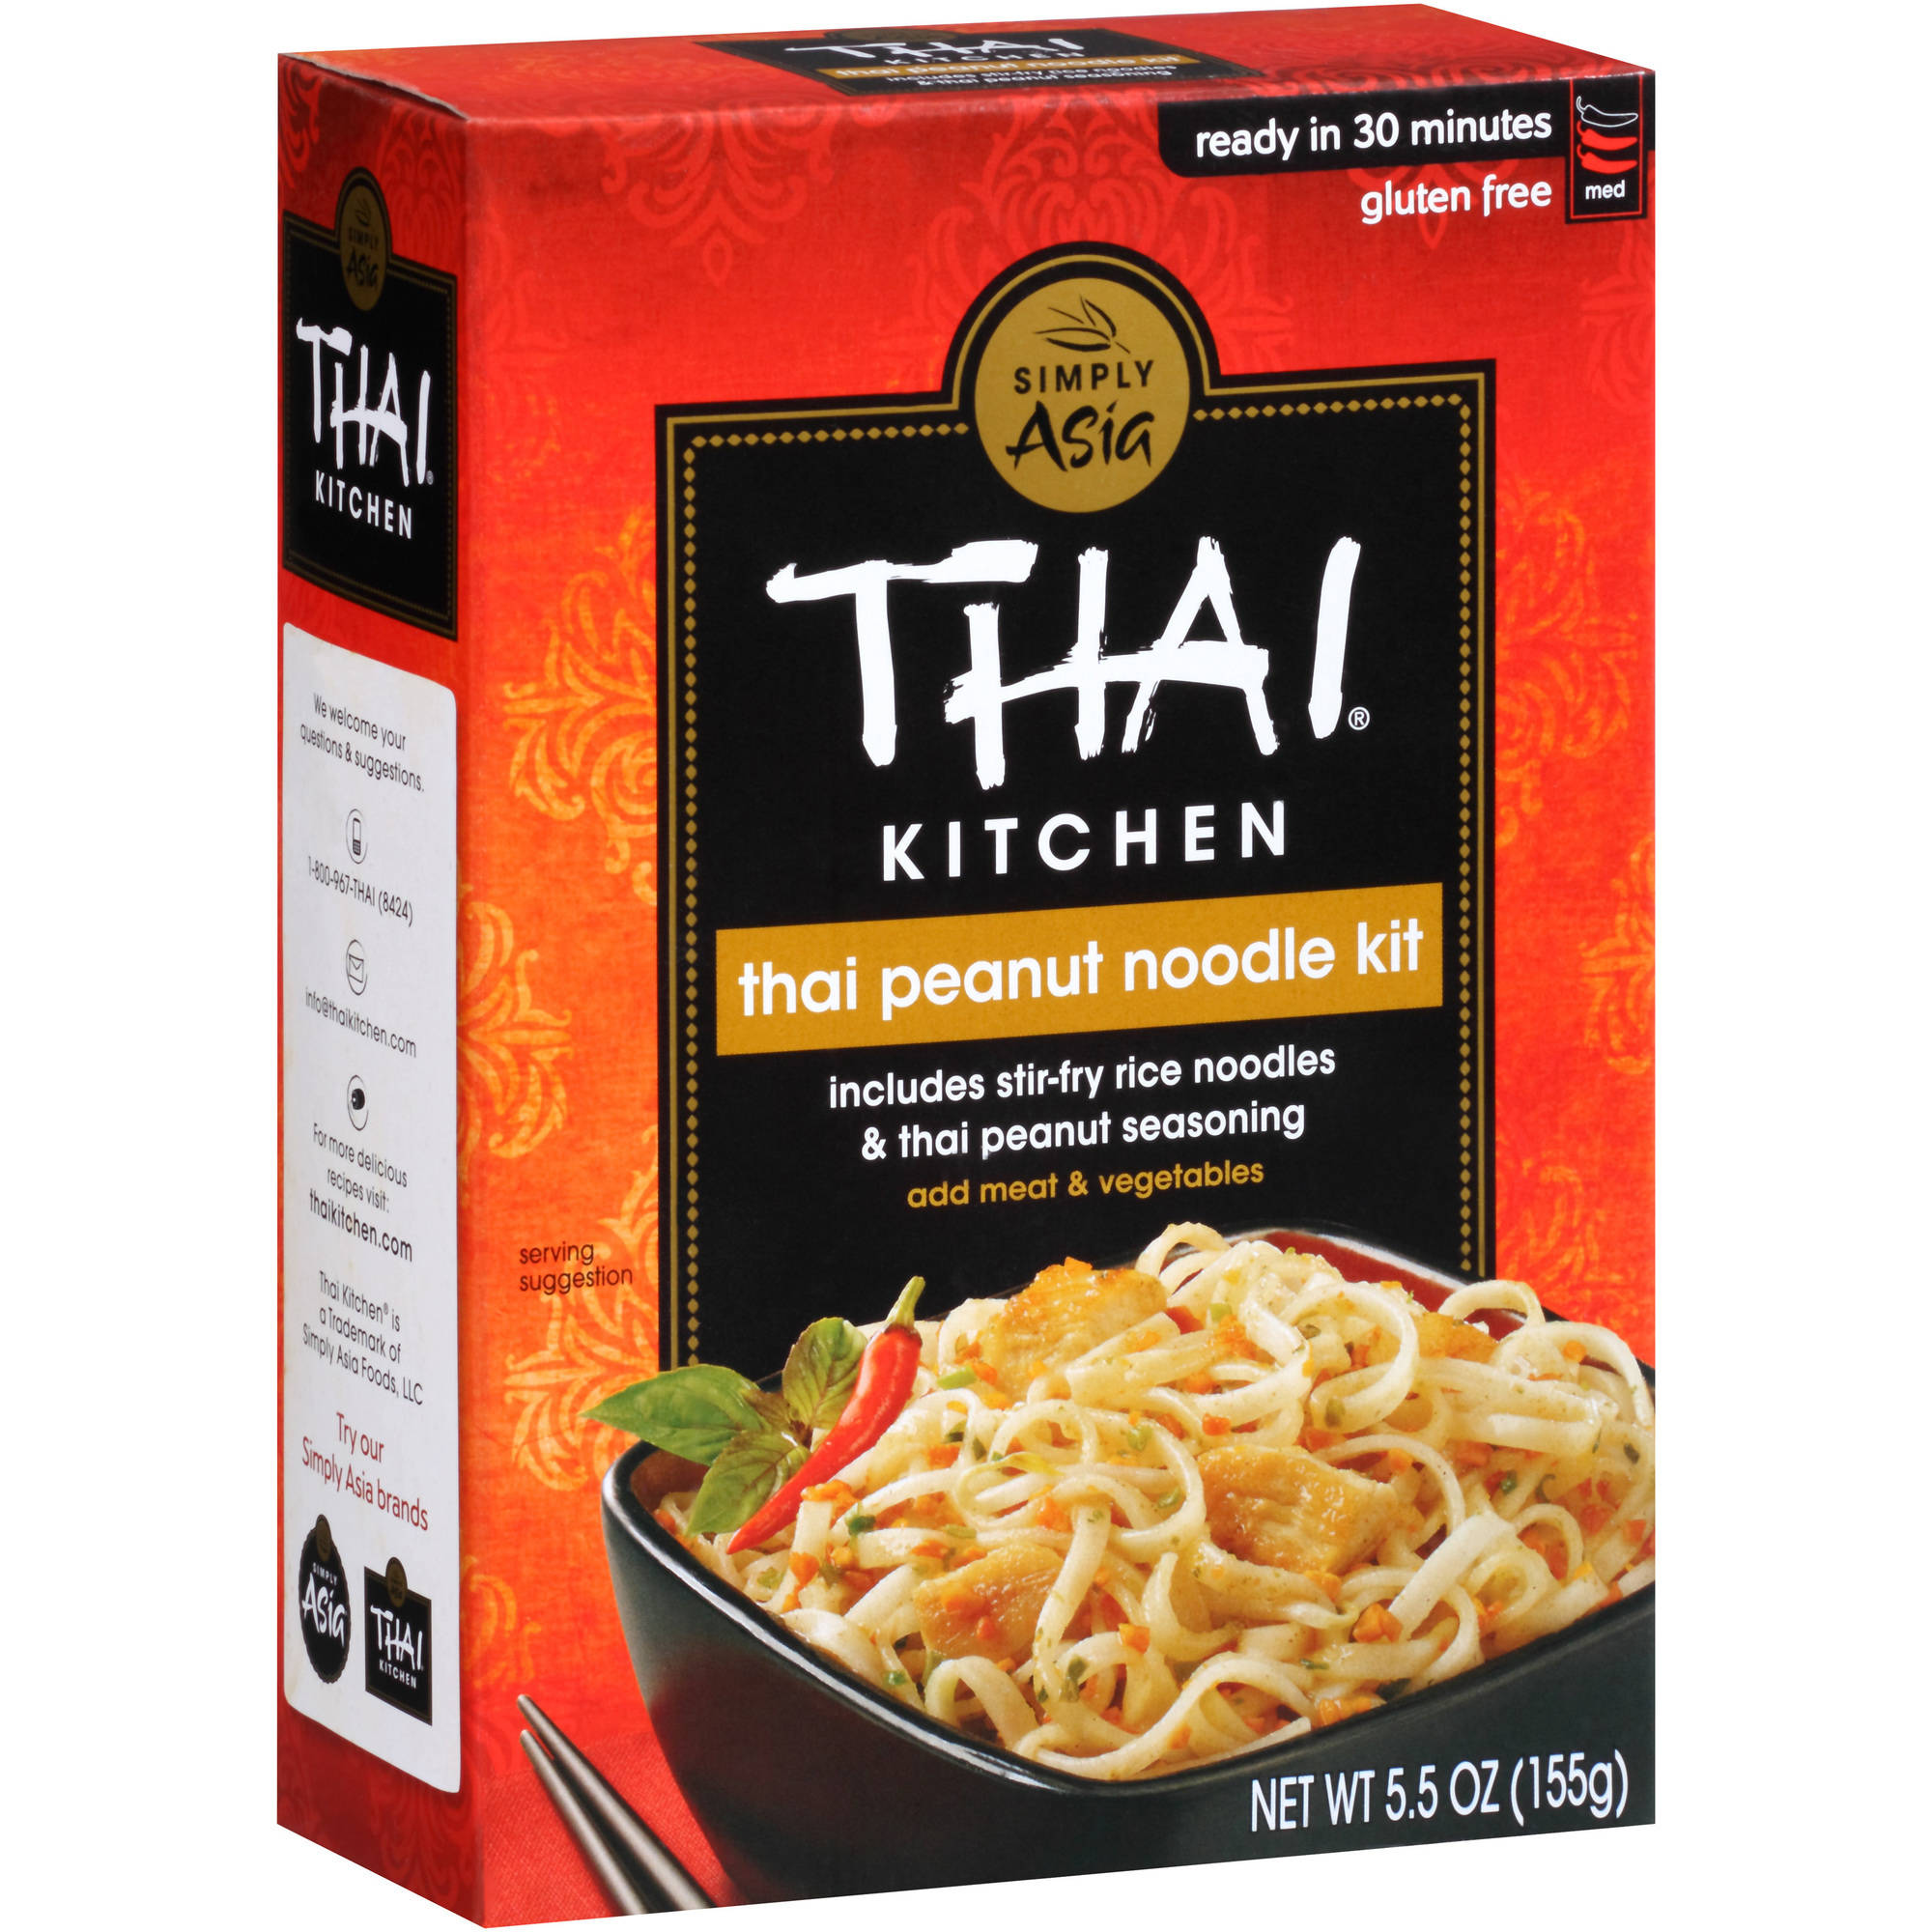 Thai Kitchen Lite Coconut Milk thai kitchen gluten free thai peanut stir fry noodles, 5.5 oz